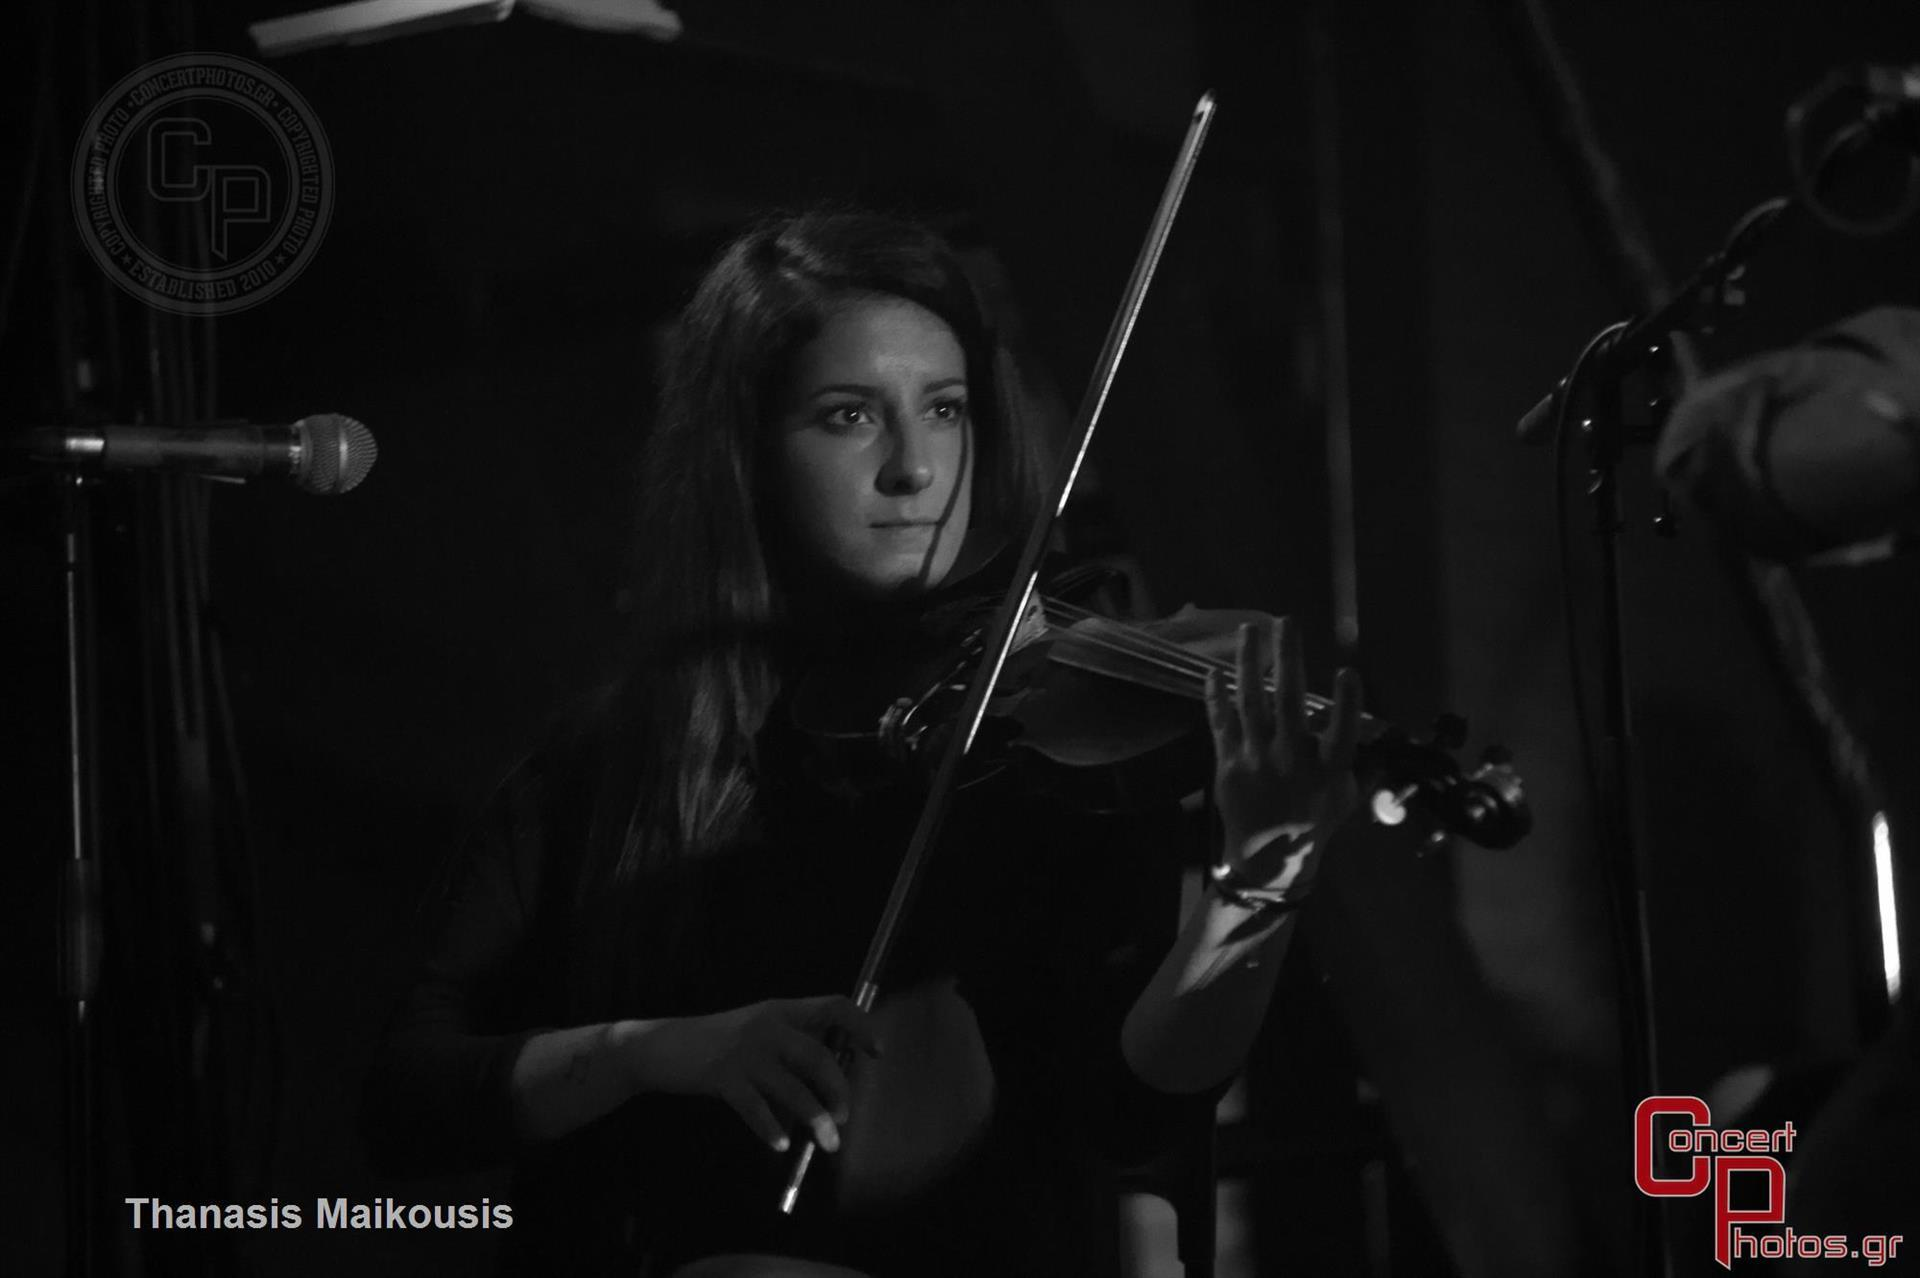 Monika-Monika photographer: Thanasis Maikousis - ConcertPhotos - 20150227_2305_55